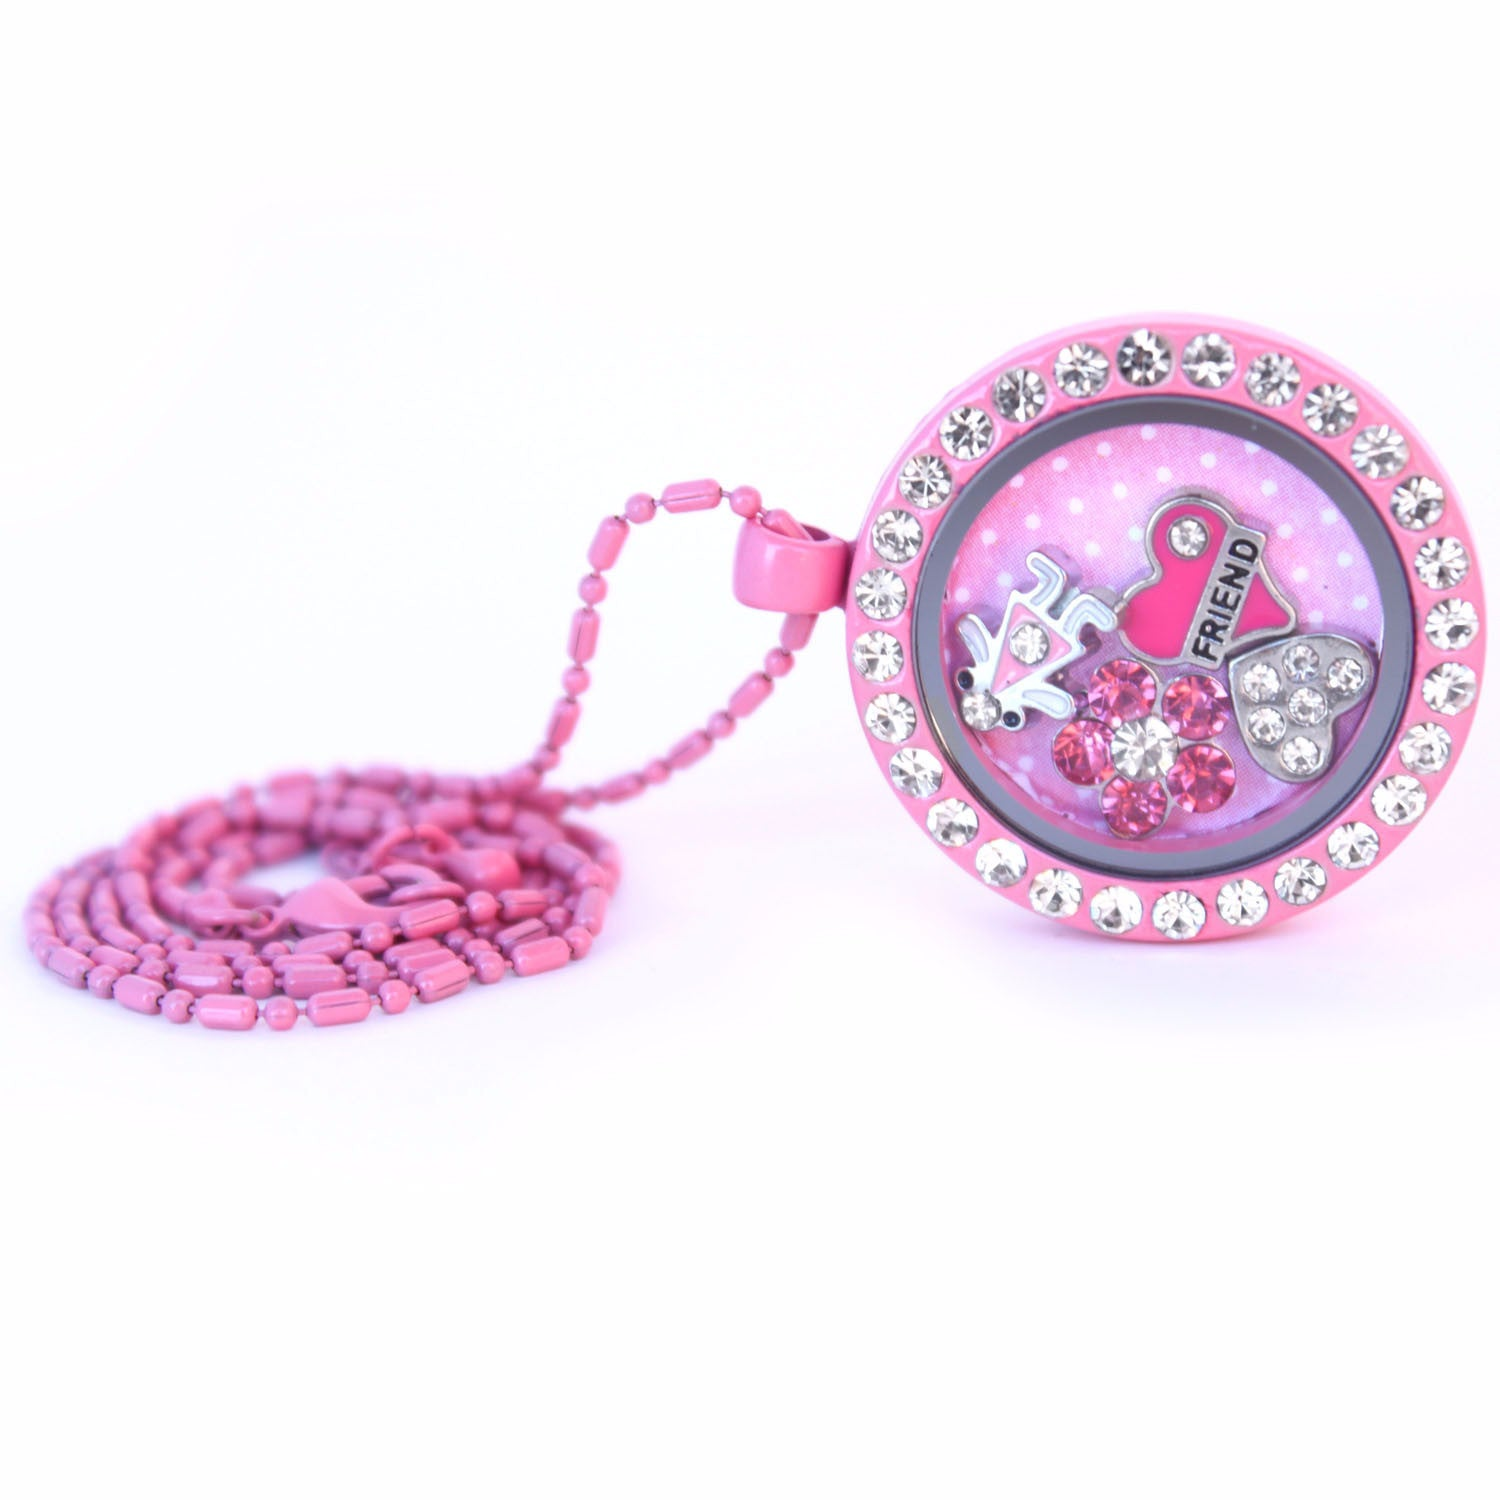 Floating Locket Necklace with Matching Chain and Choice of 6 Charms (Pink Circle)